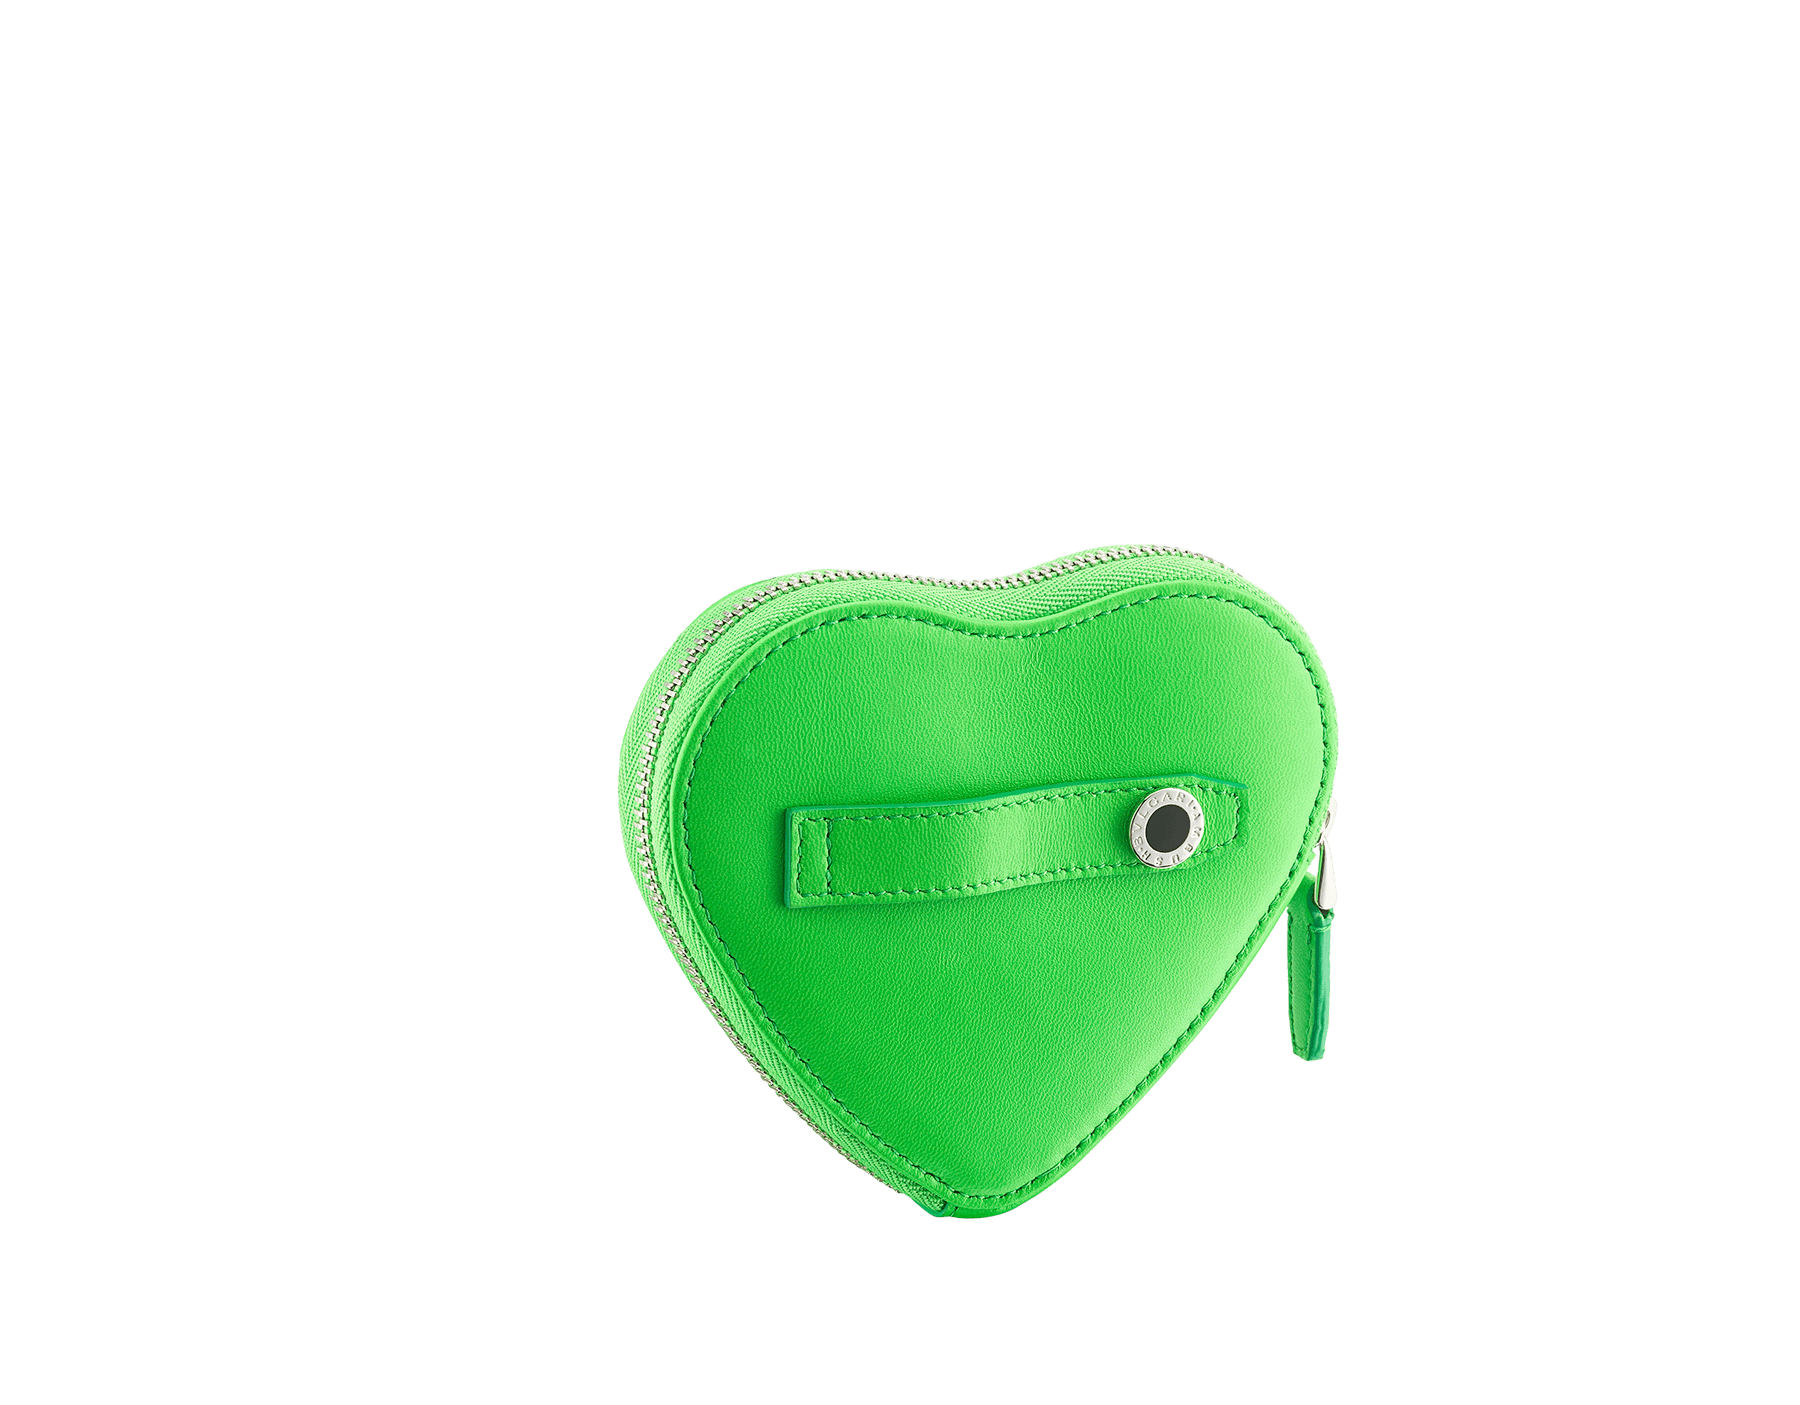 """Ambush x Bvlgari"" coin purse in bright green quilted nappa leather. New Serpenti head in palladium plated brass dressed with bright green nappa leather, finished with black onyx eyes. Limited edition. YA-HEARTCOINC image 3"